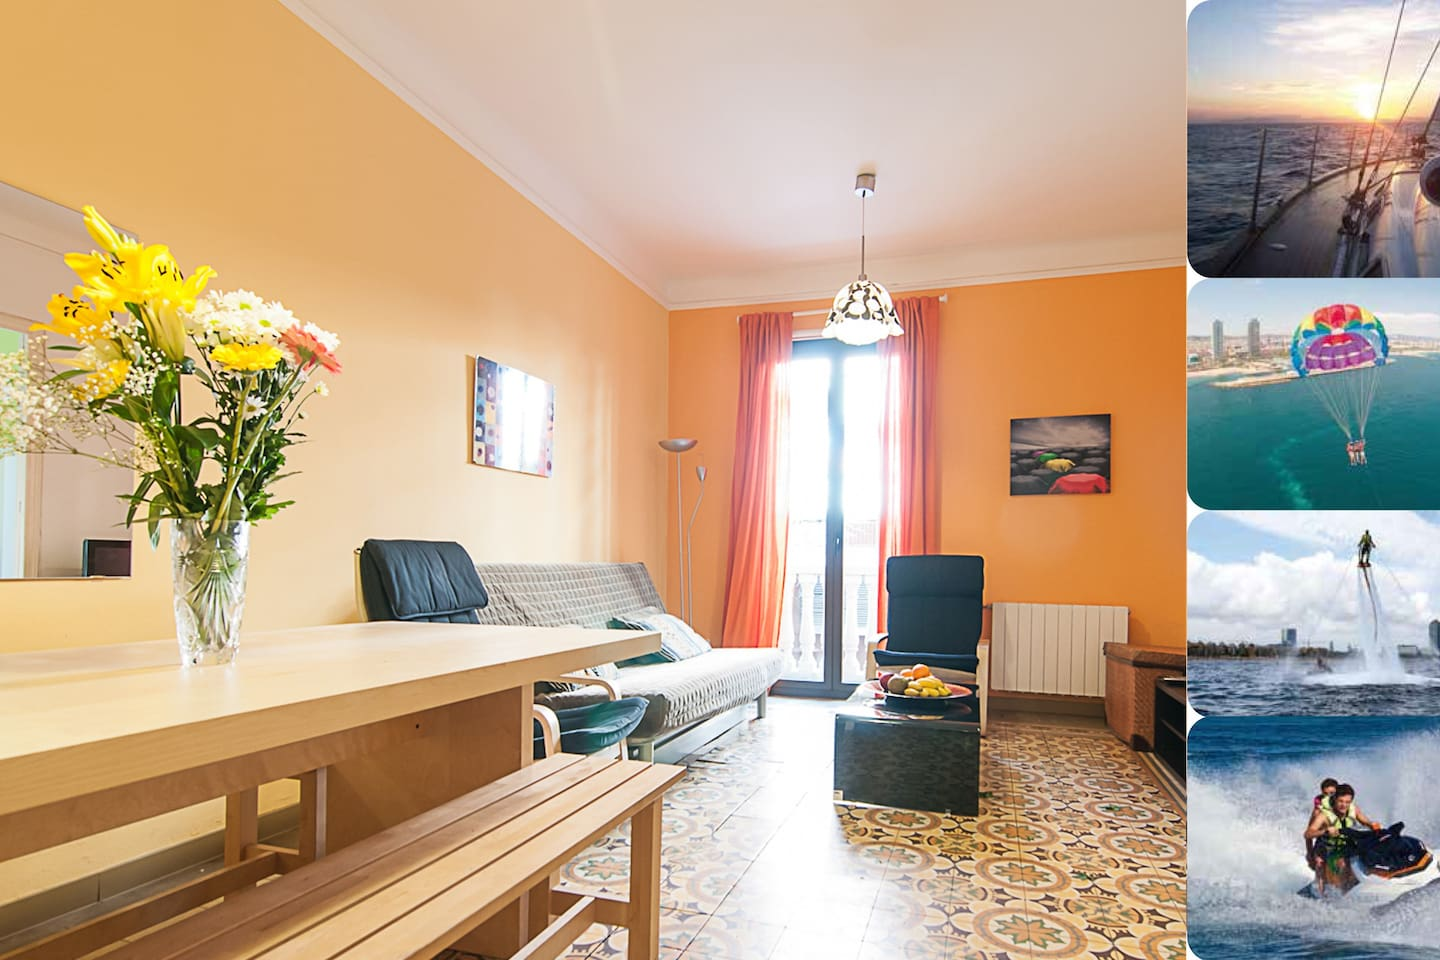 A charming three bedroom apartment with stunning activities